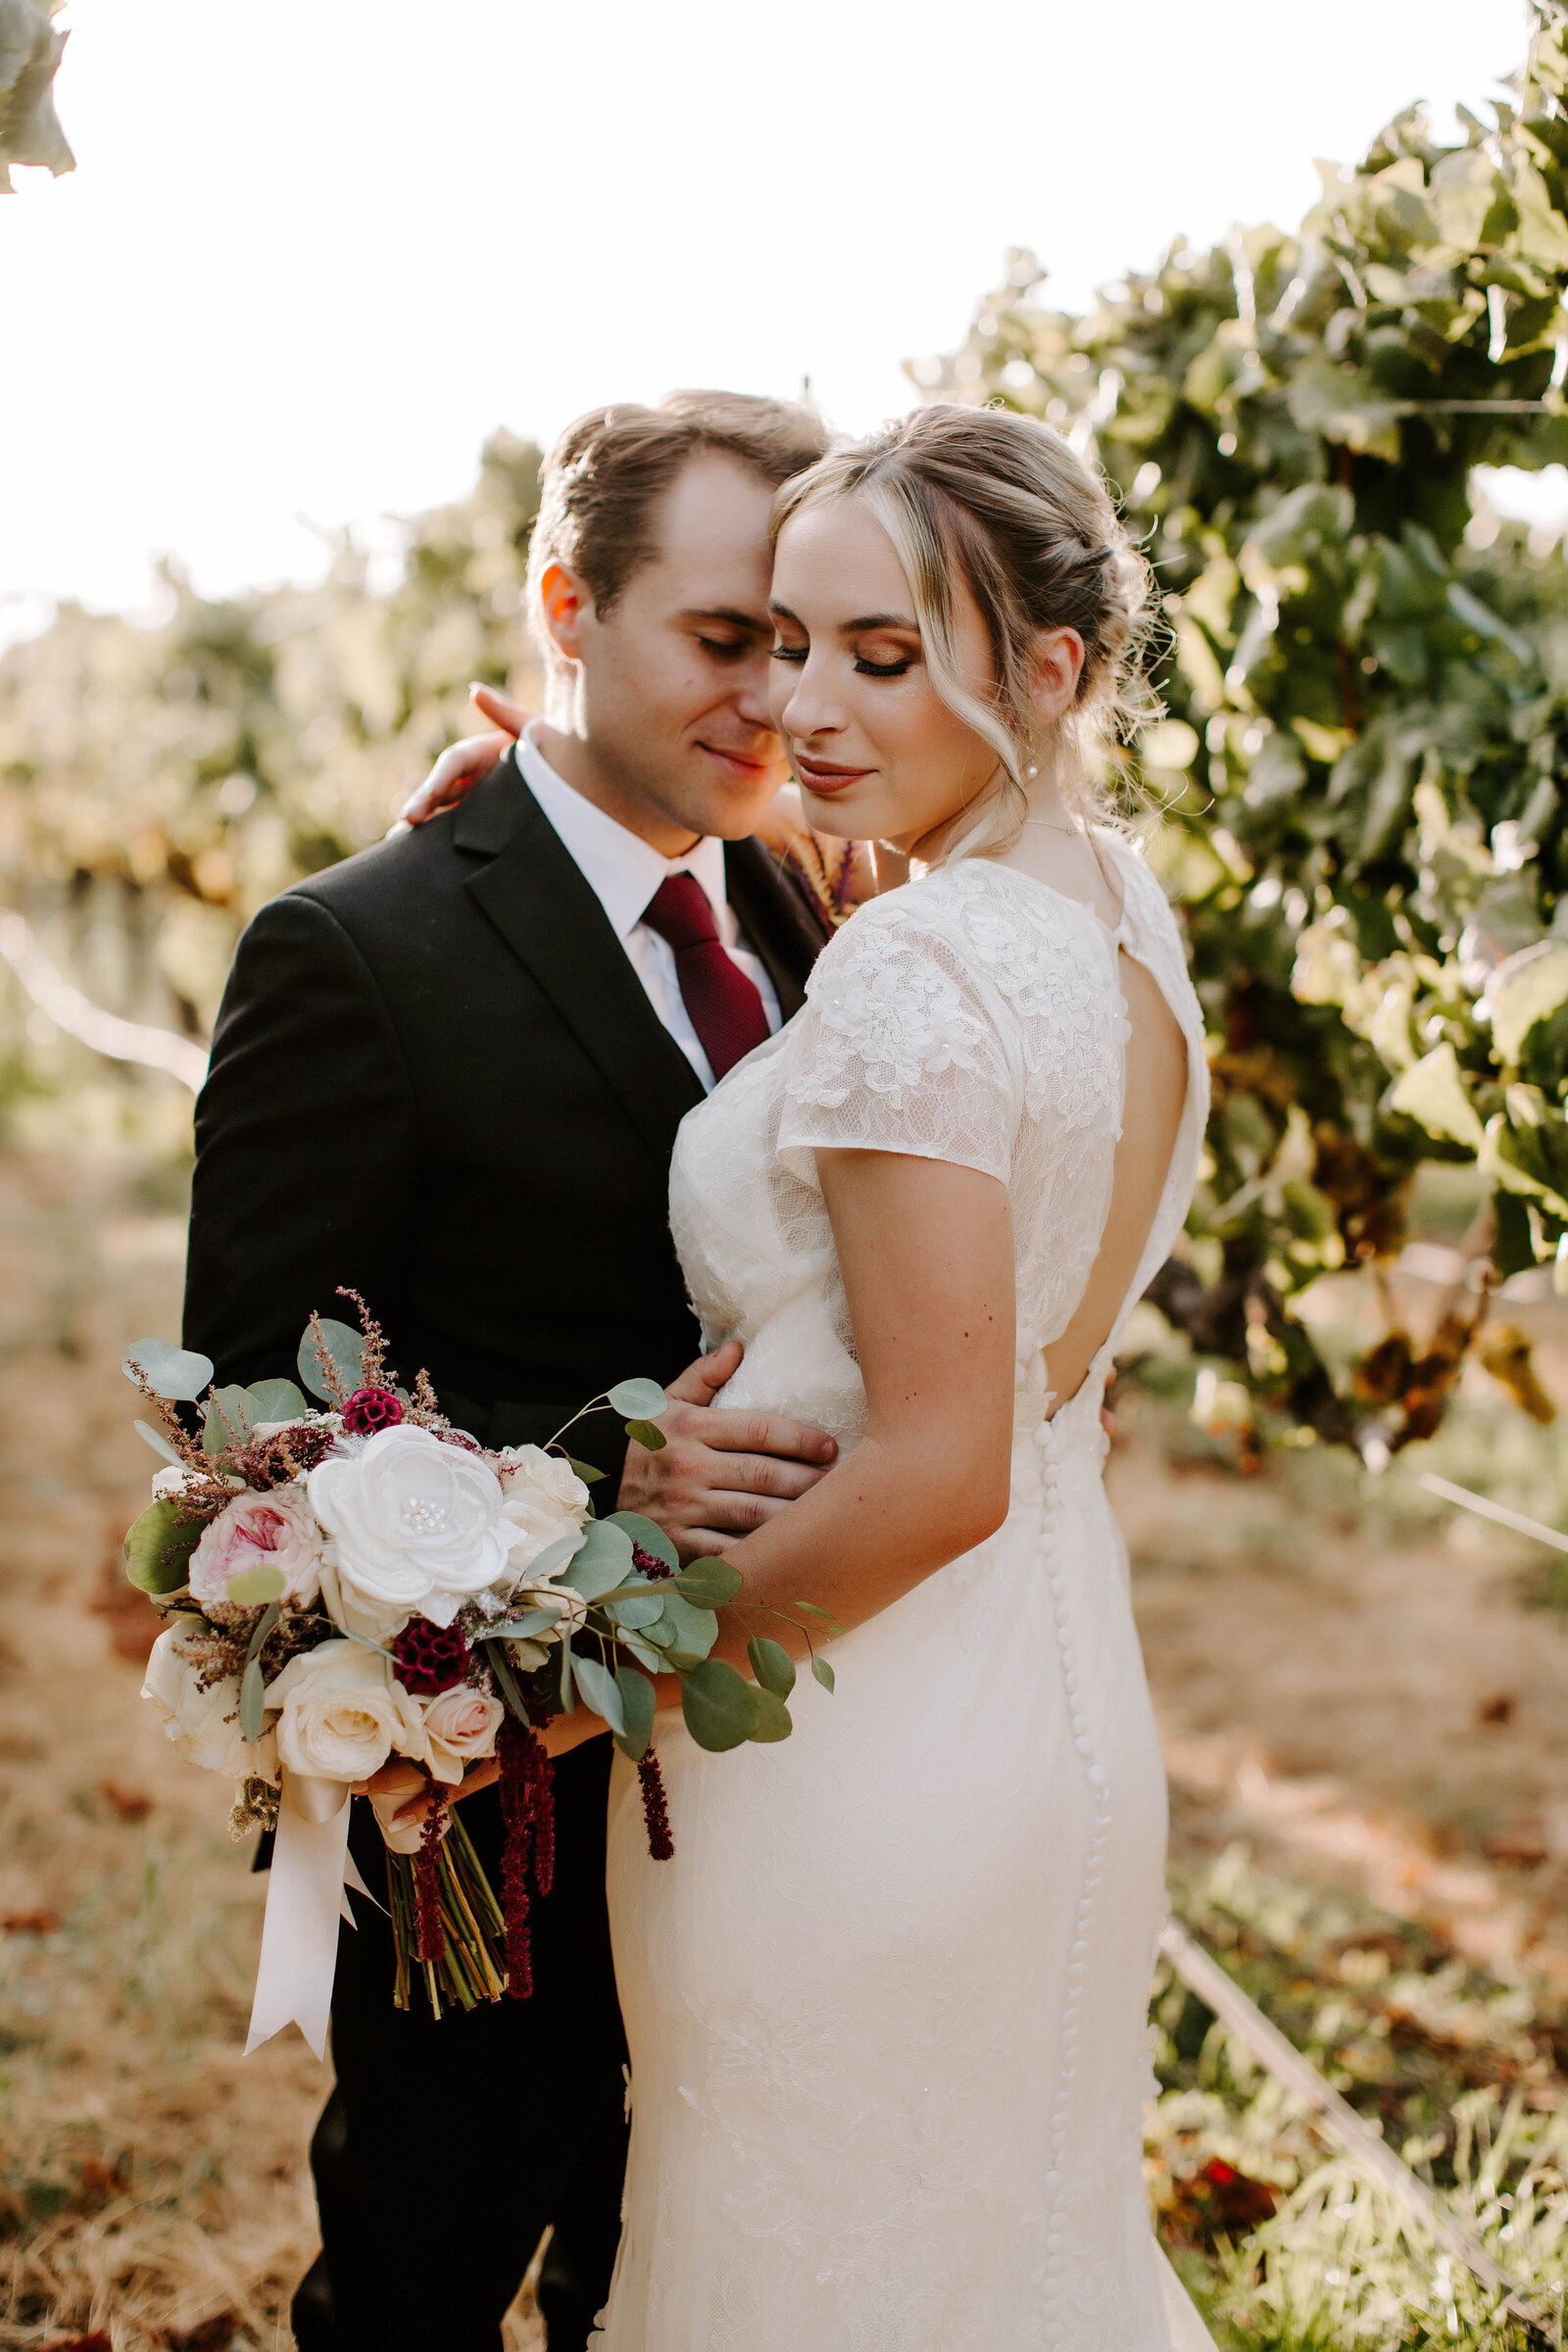 Katy-Justin_Livermore-Wedding_Hannah-Berglund-Photography-395